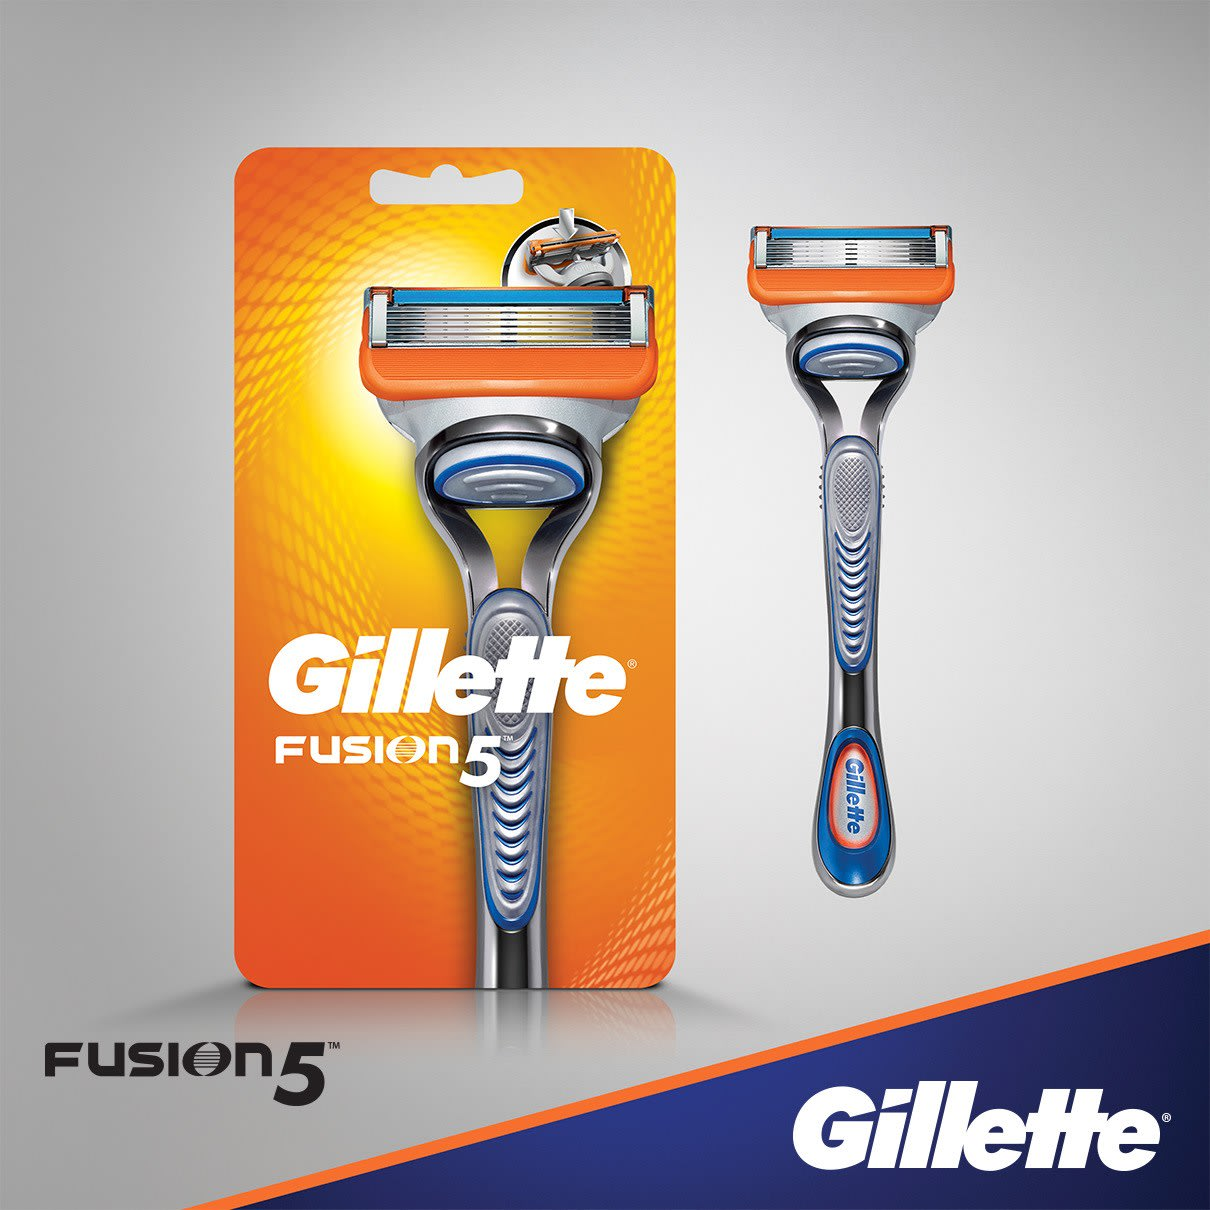 Gillette Fusion5 Men's Razor